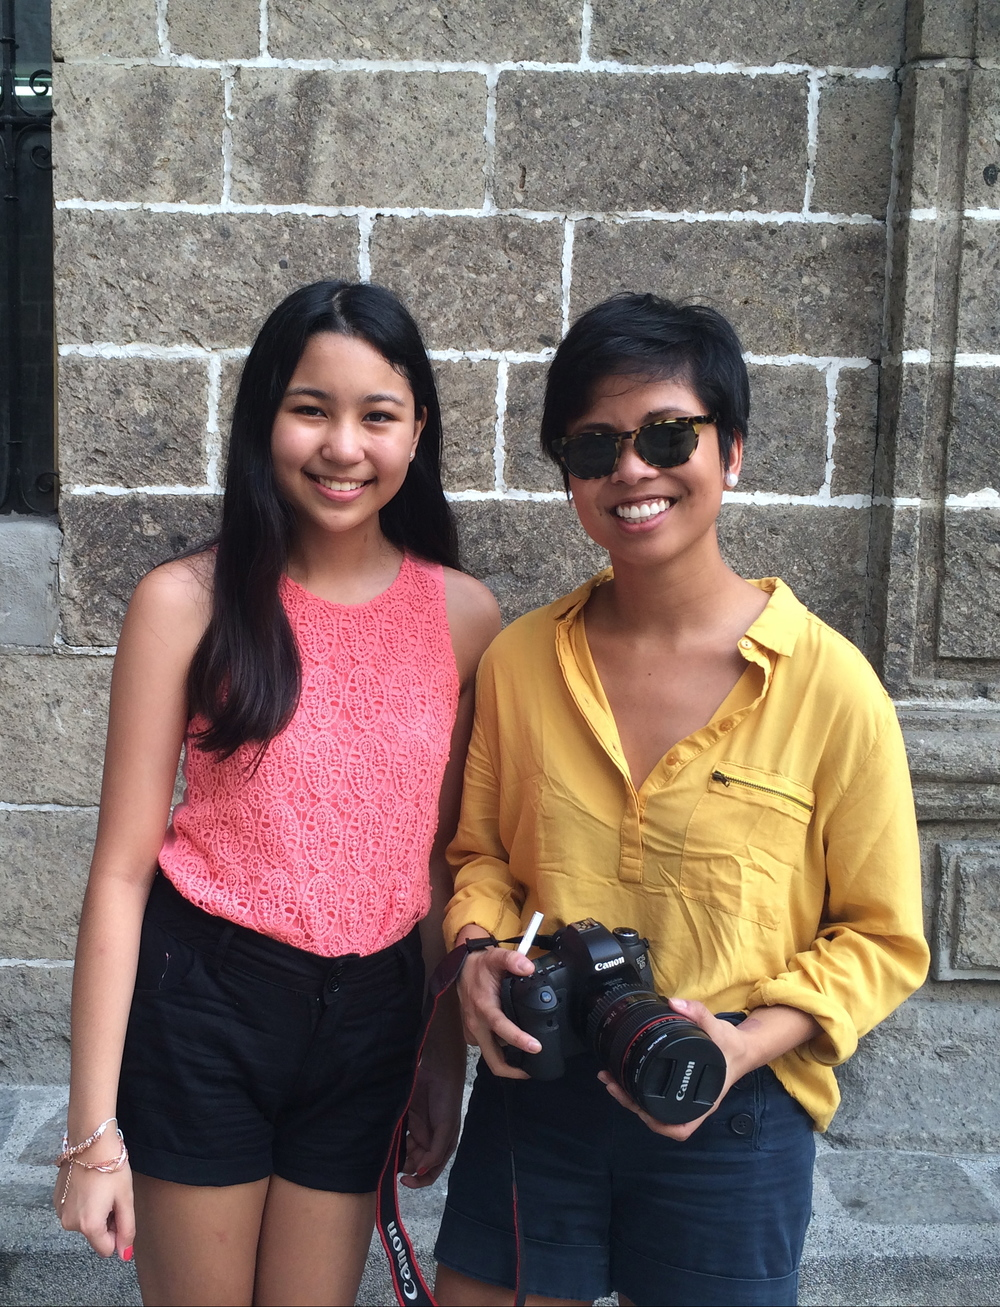 Pulse.ph intern Cheska Bernabe poses with Founder Rovaira Dasig.